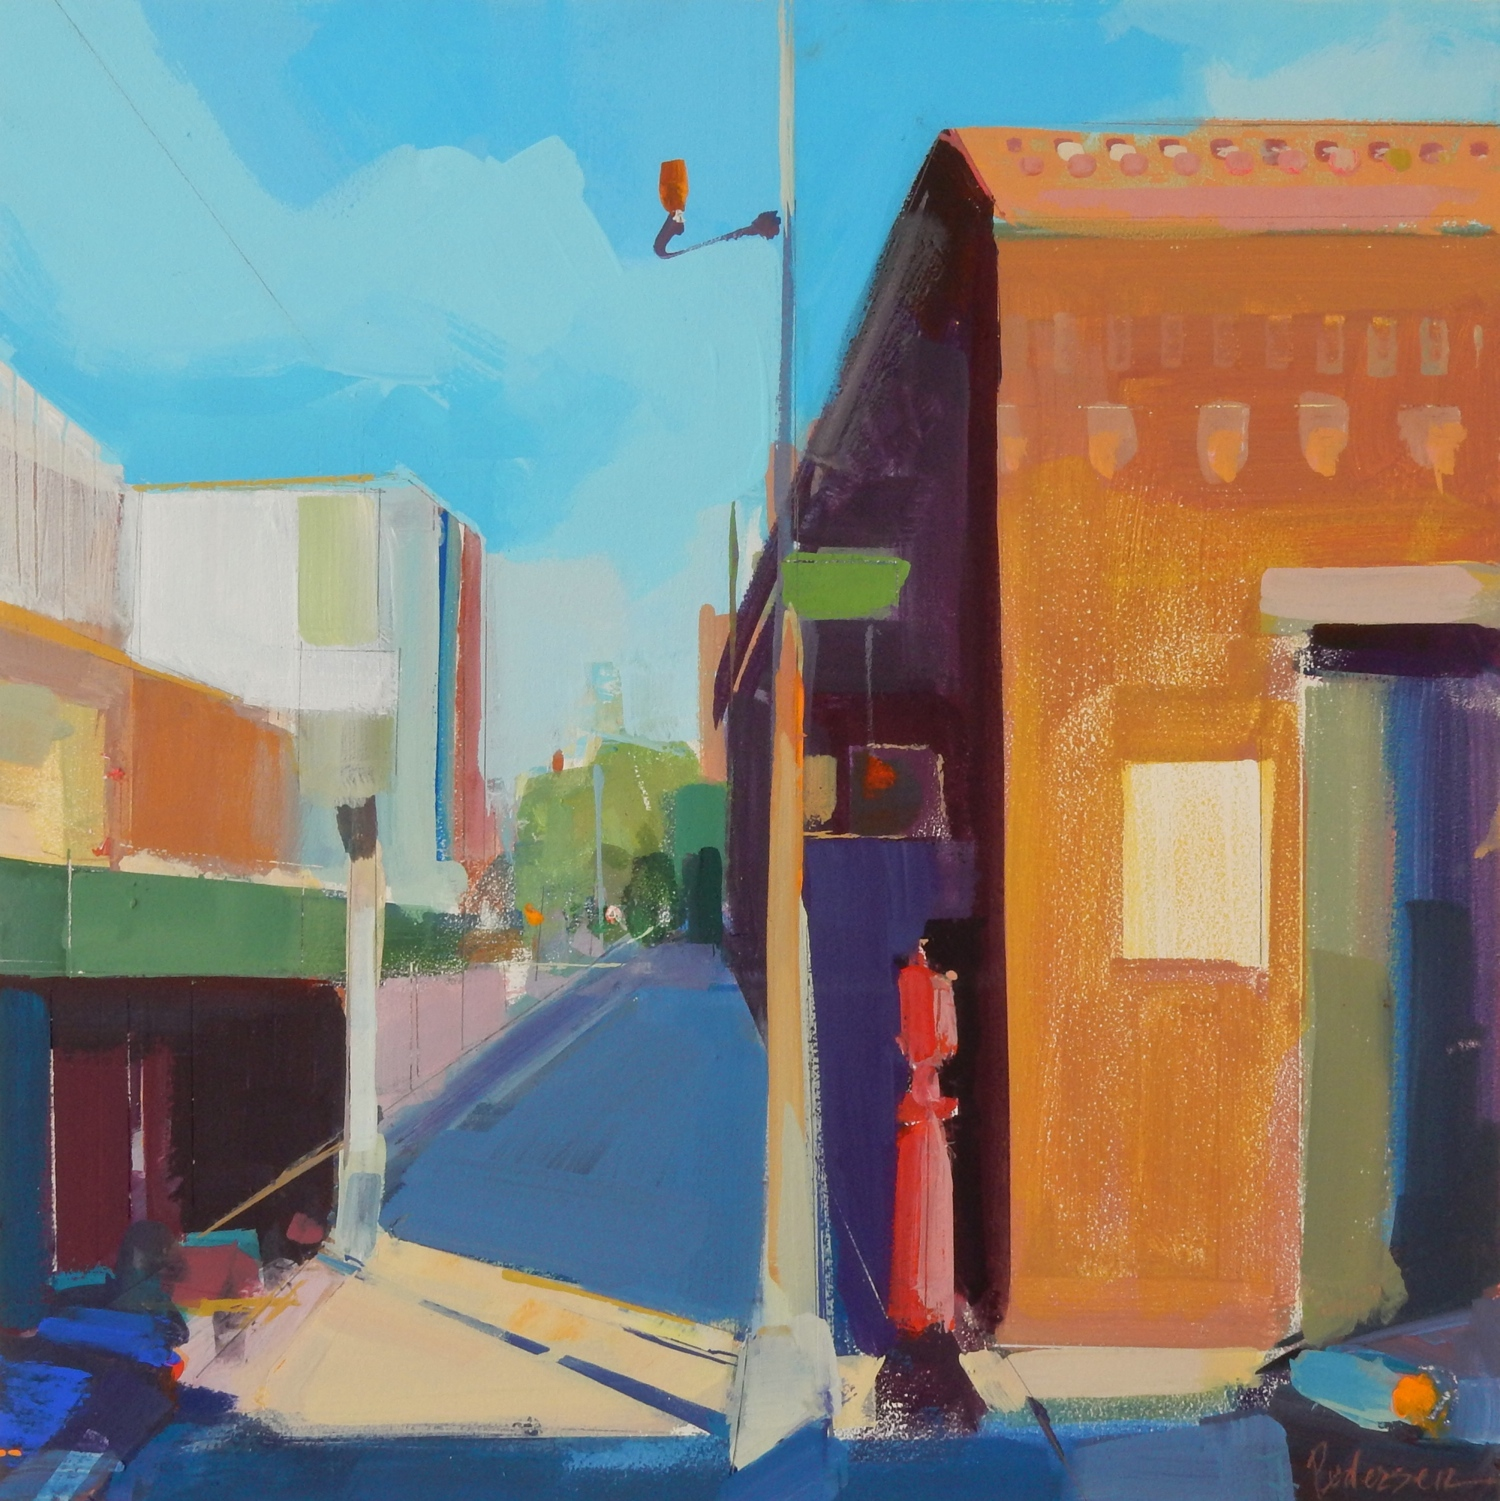 3rd Ave. Gowanus - My 'Brooklyn Neighborhood' series up In the Project Space at 440 Gallery.(440 Sixth Ave., Brooklyn NY 11215)May 31st to July 1st.